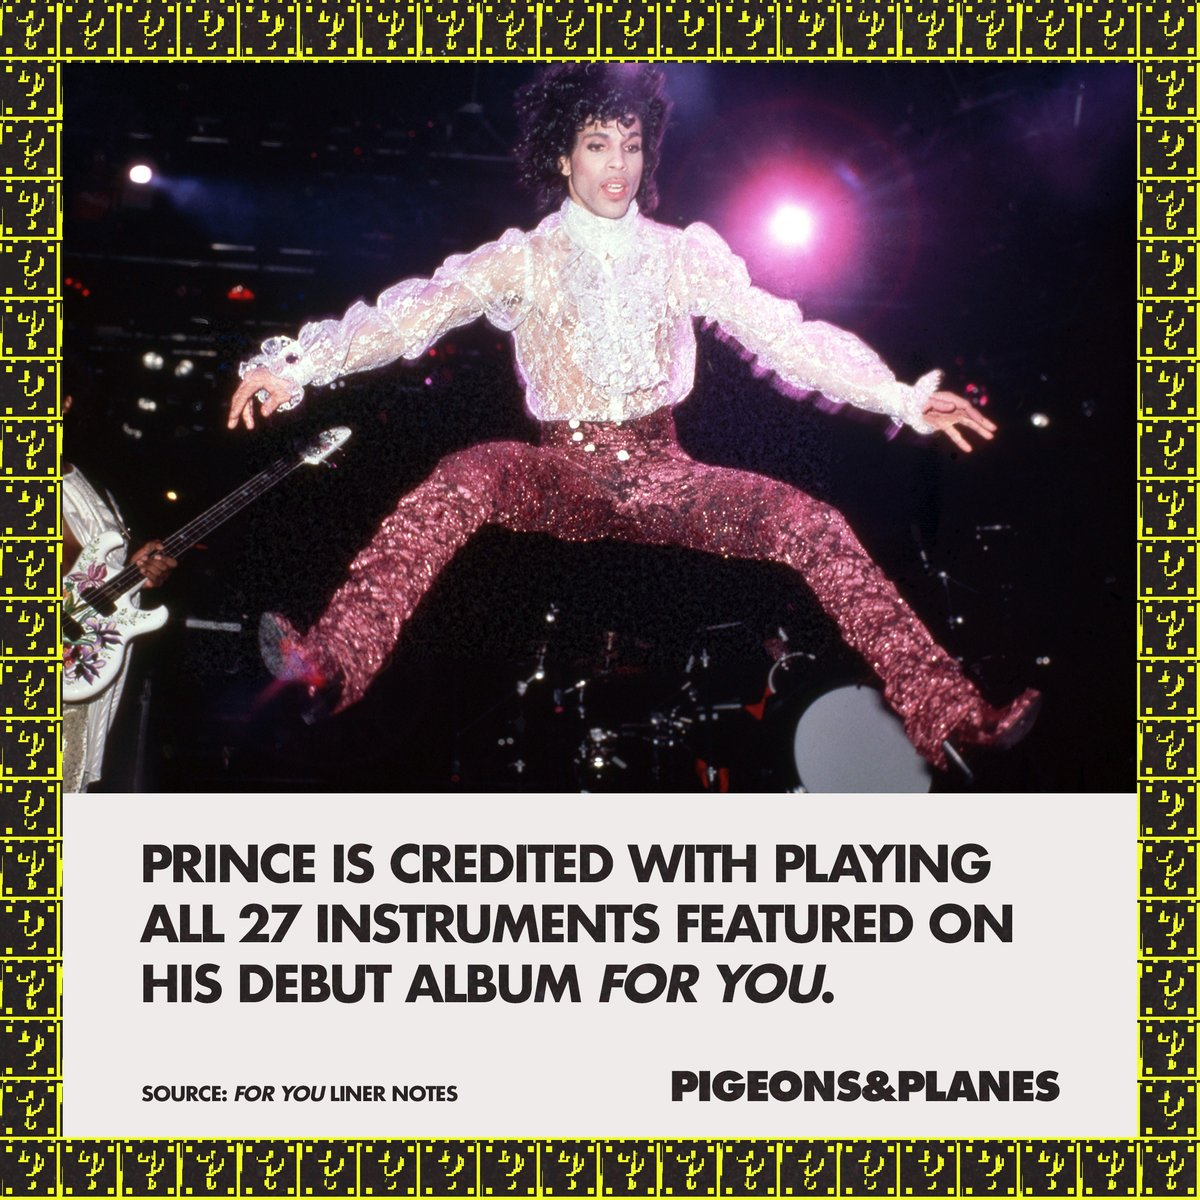 """From electric guitar and drums to """"hand claps and finger snaps,"""" every sound on 'For You' was performed by Prince. He is also credited as producer, arranger, composer, and performer for every track on the album. https://t.co/sfwcOUJiPs"""